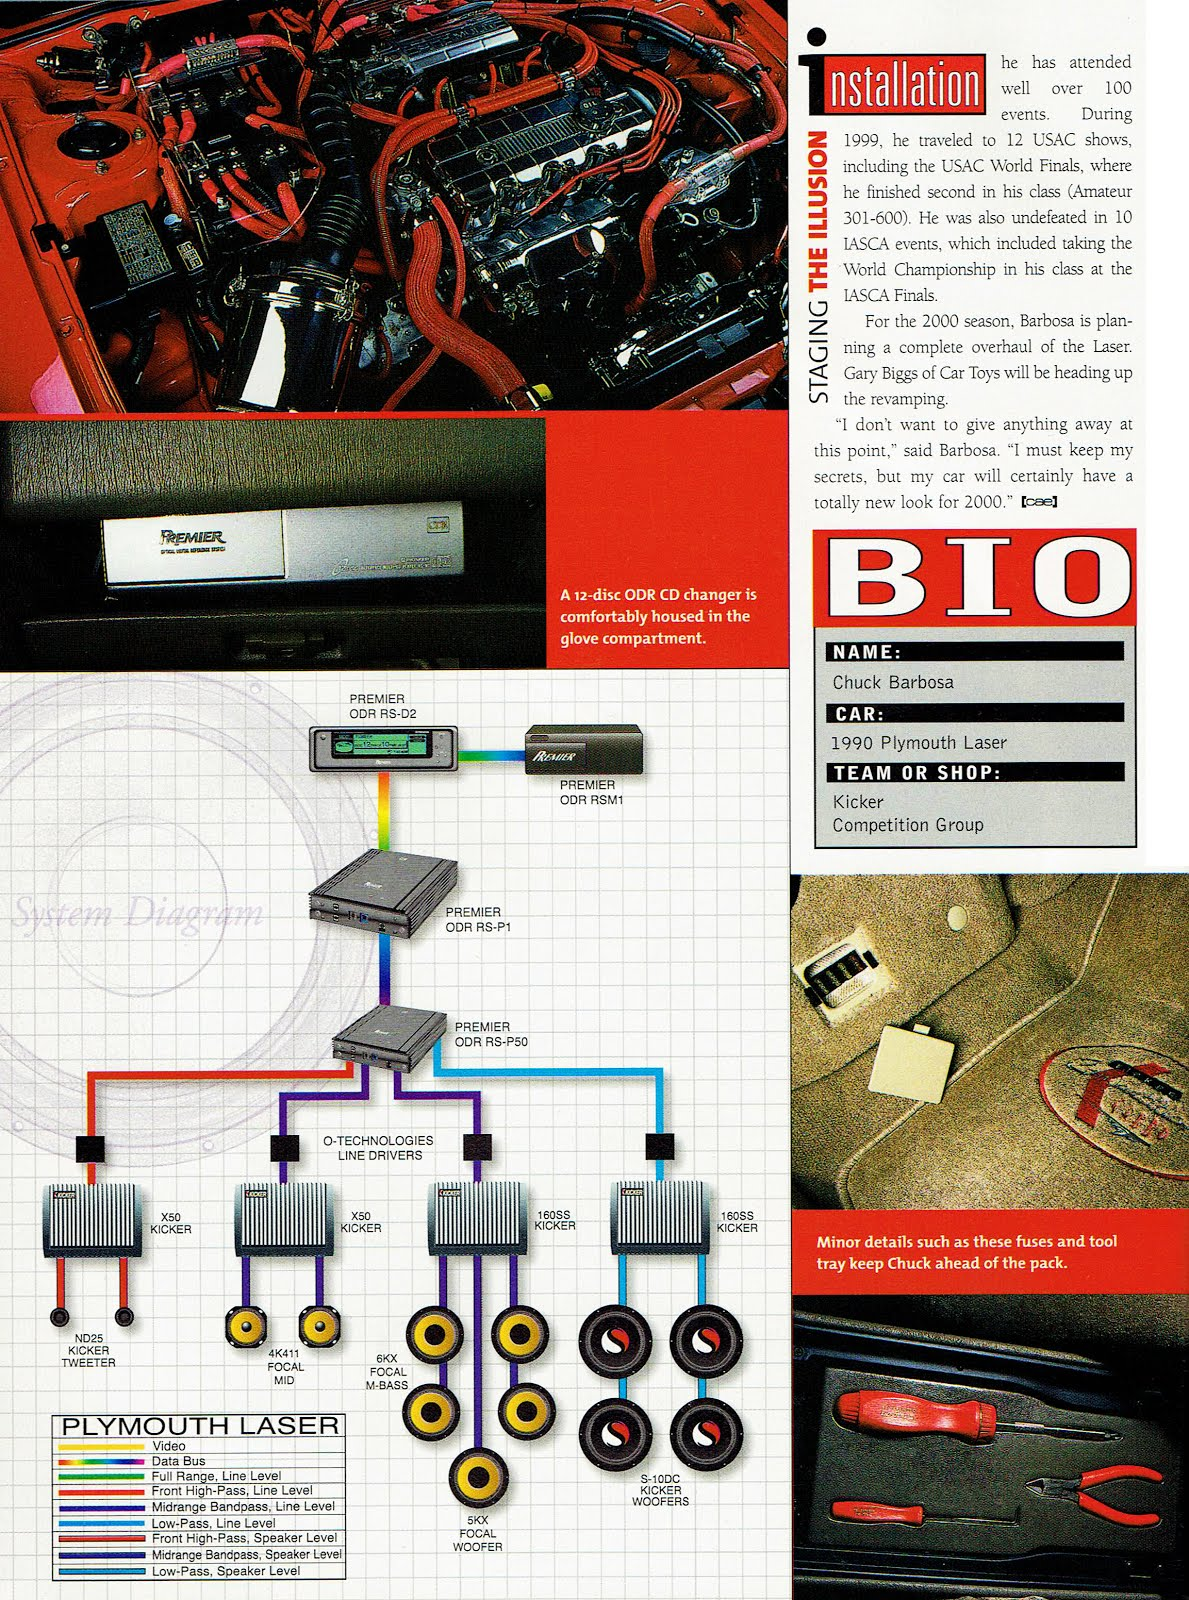 Audio2music The Chateau Lafite Of Car Audio 1990 Plymouth Laser Wiring Diagram Page 60car Electronics May 2000